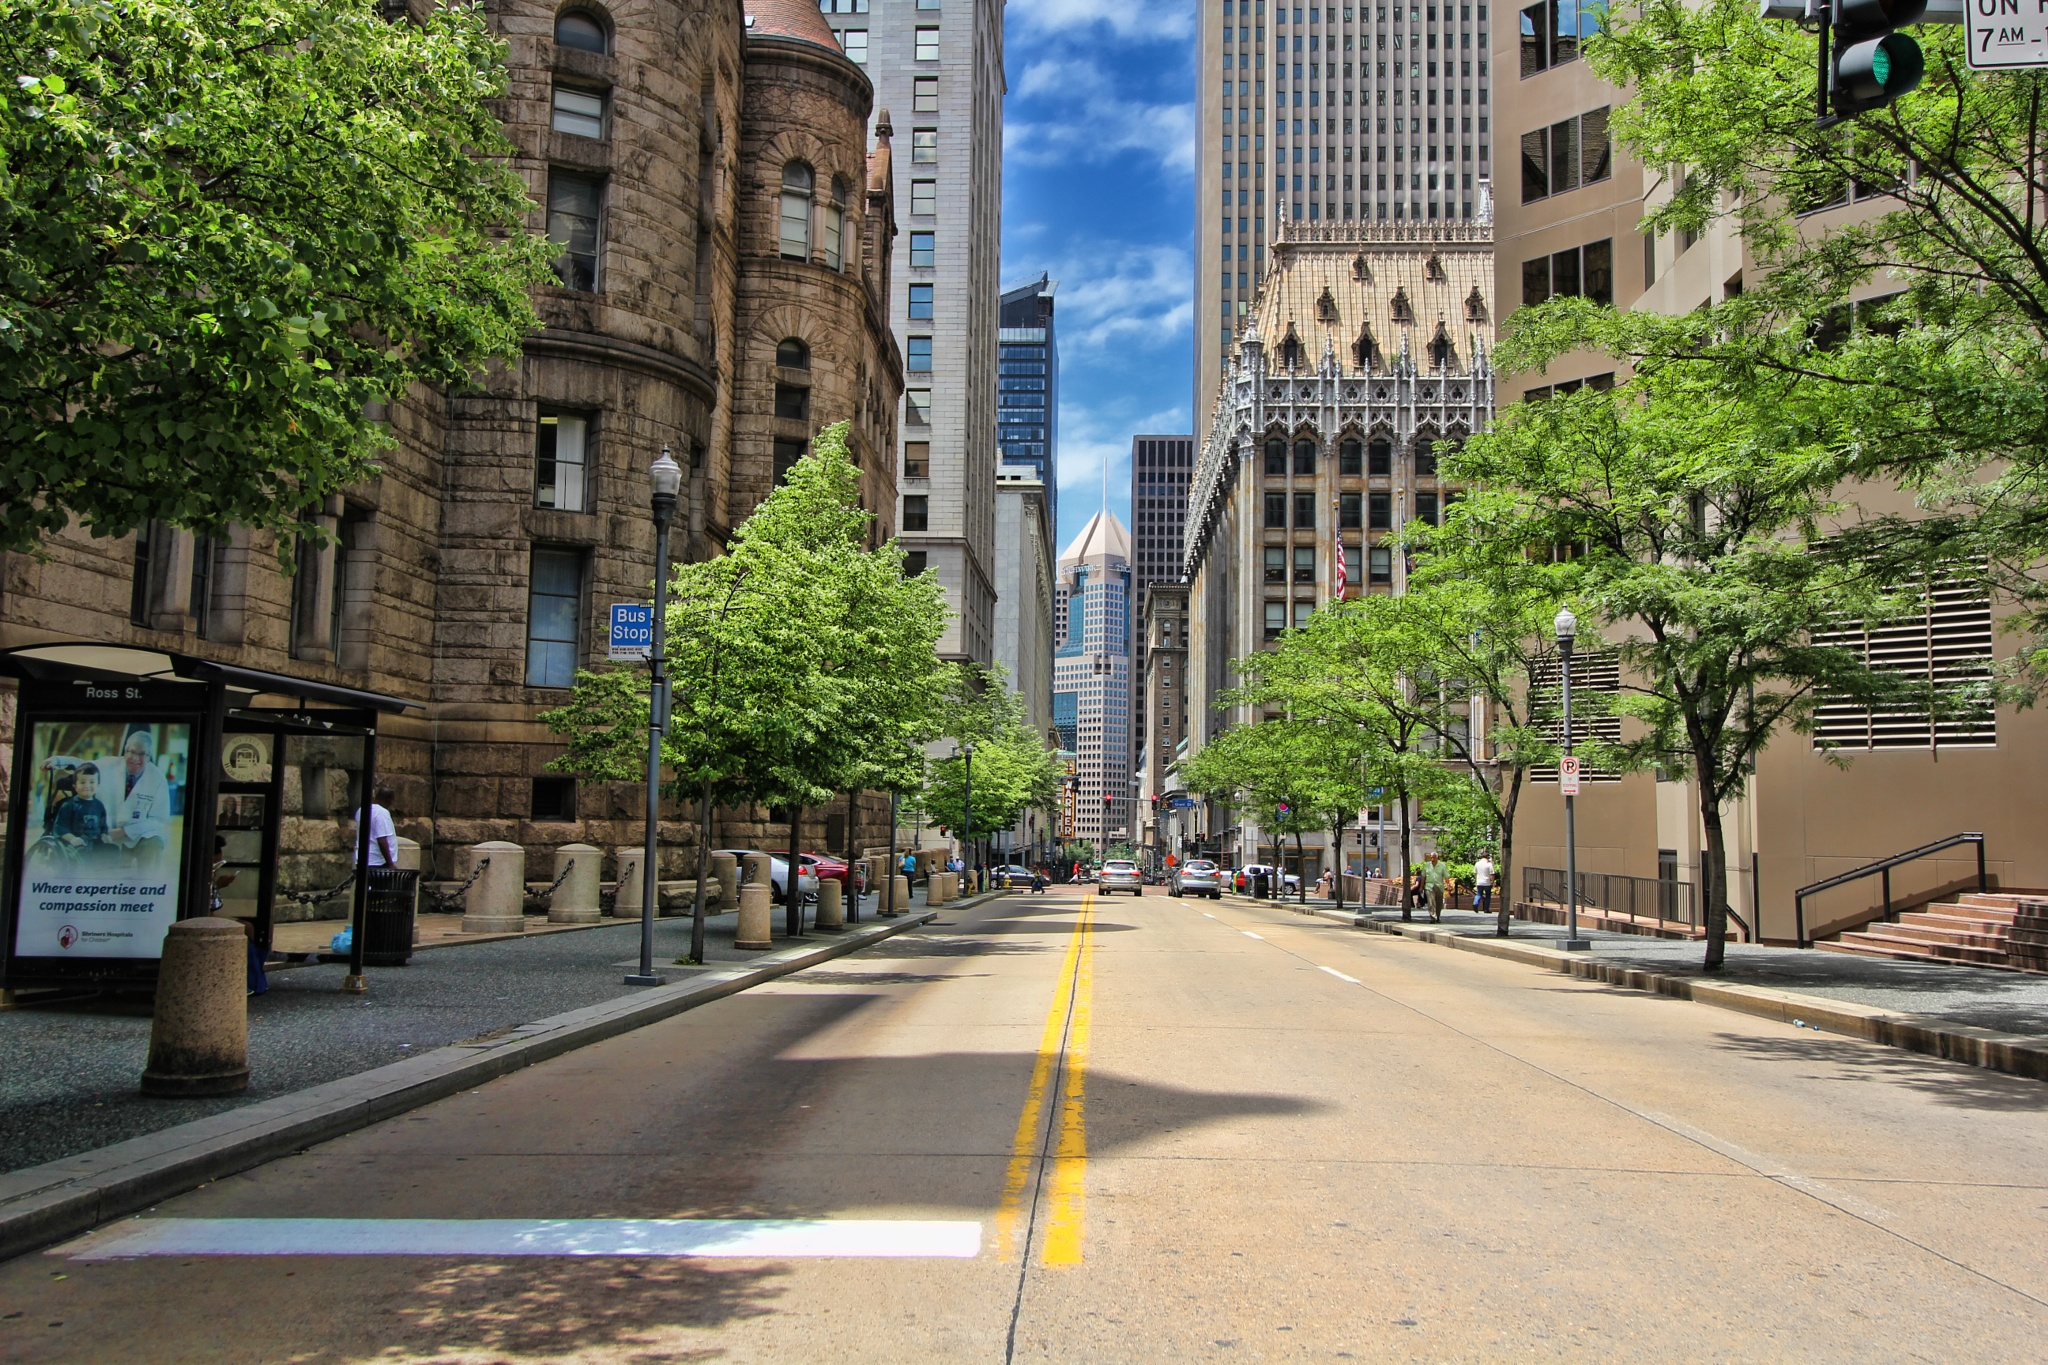 Pittsburgh Avenue by Ultravphotography